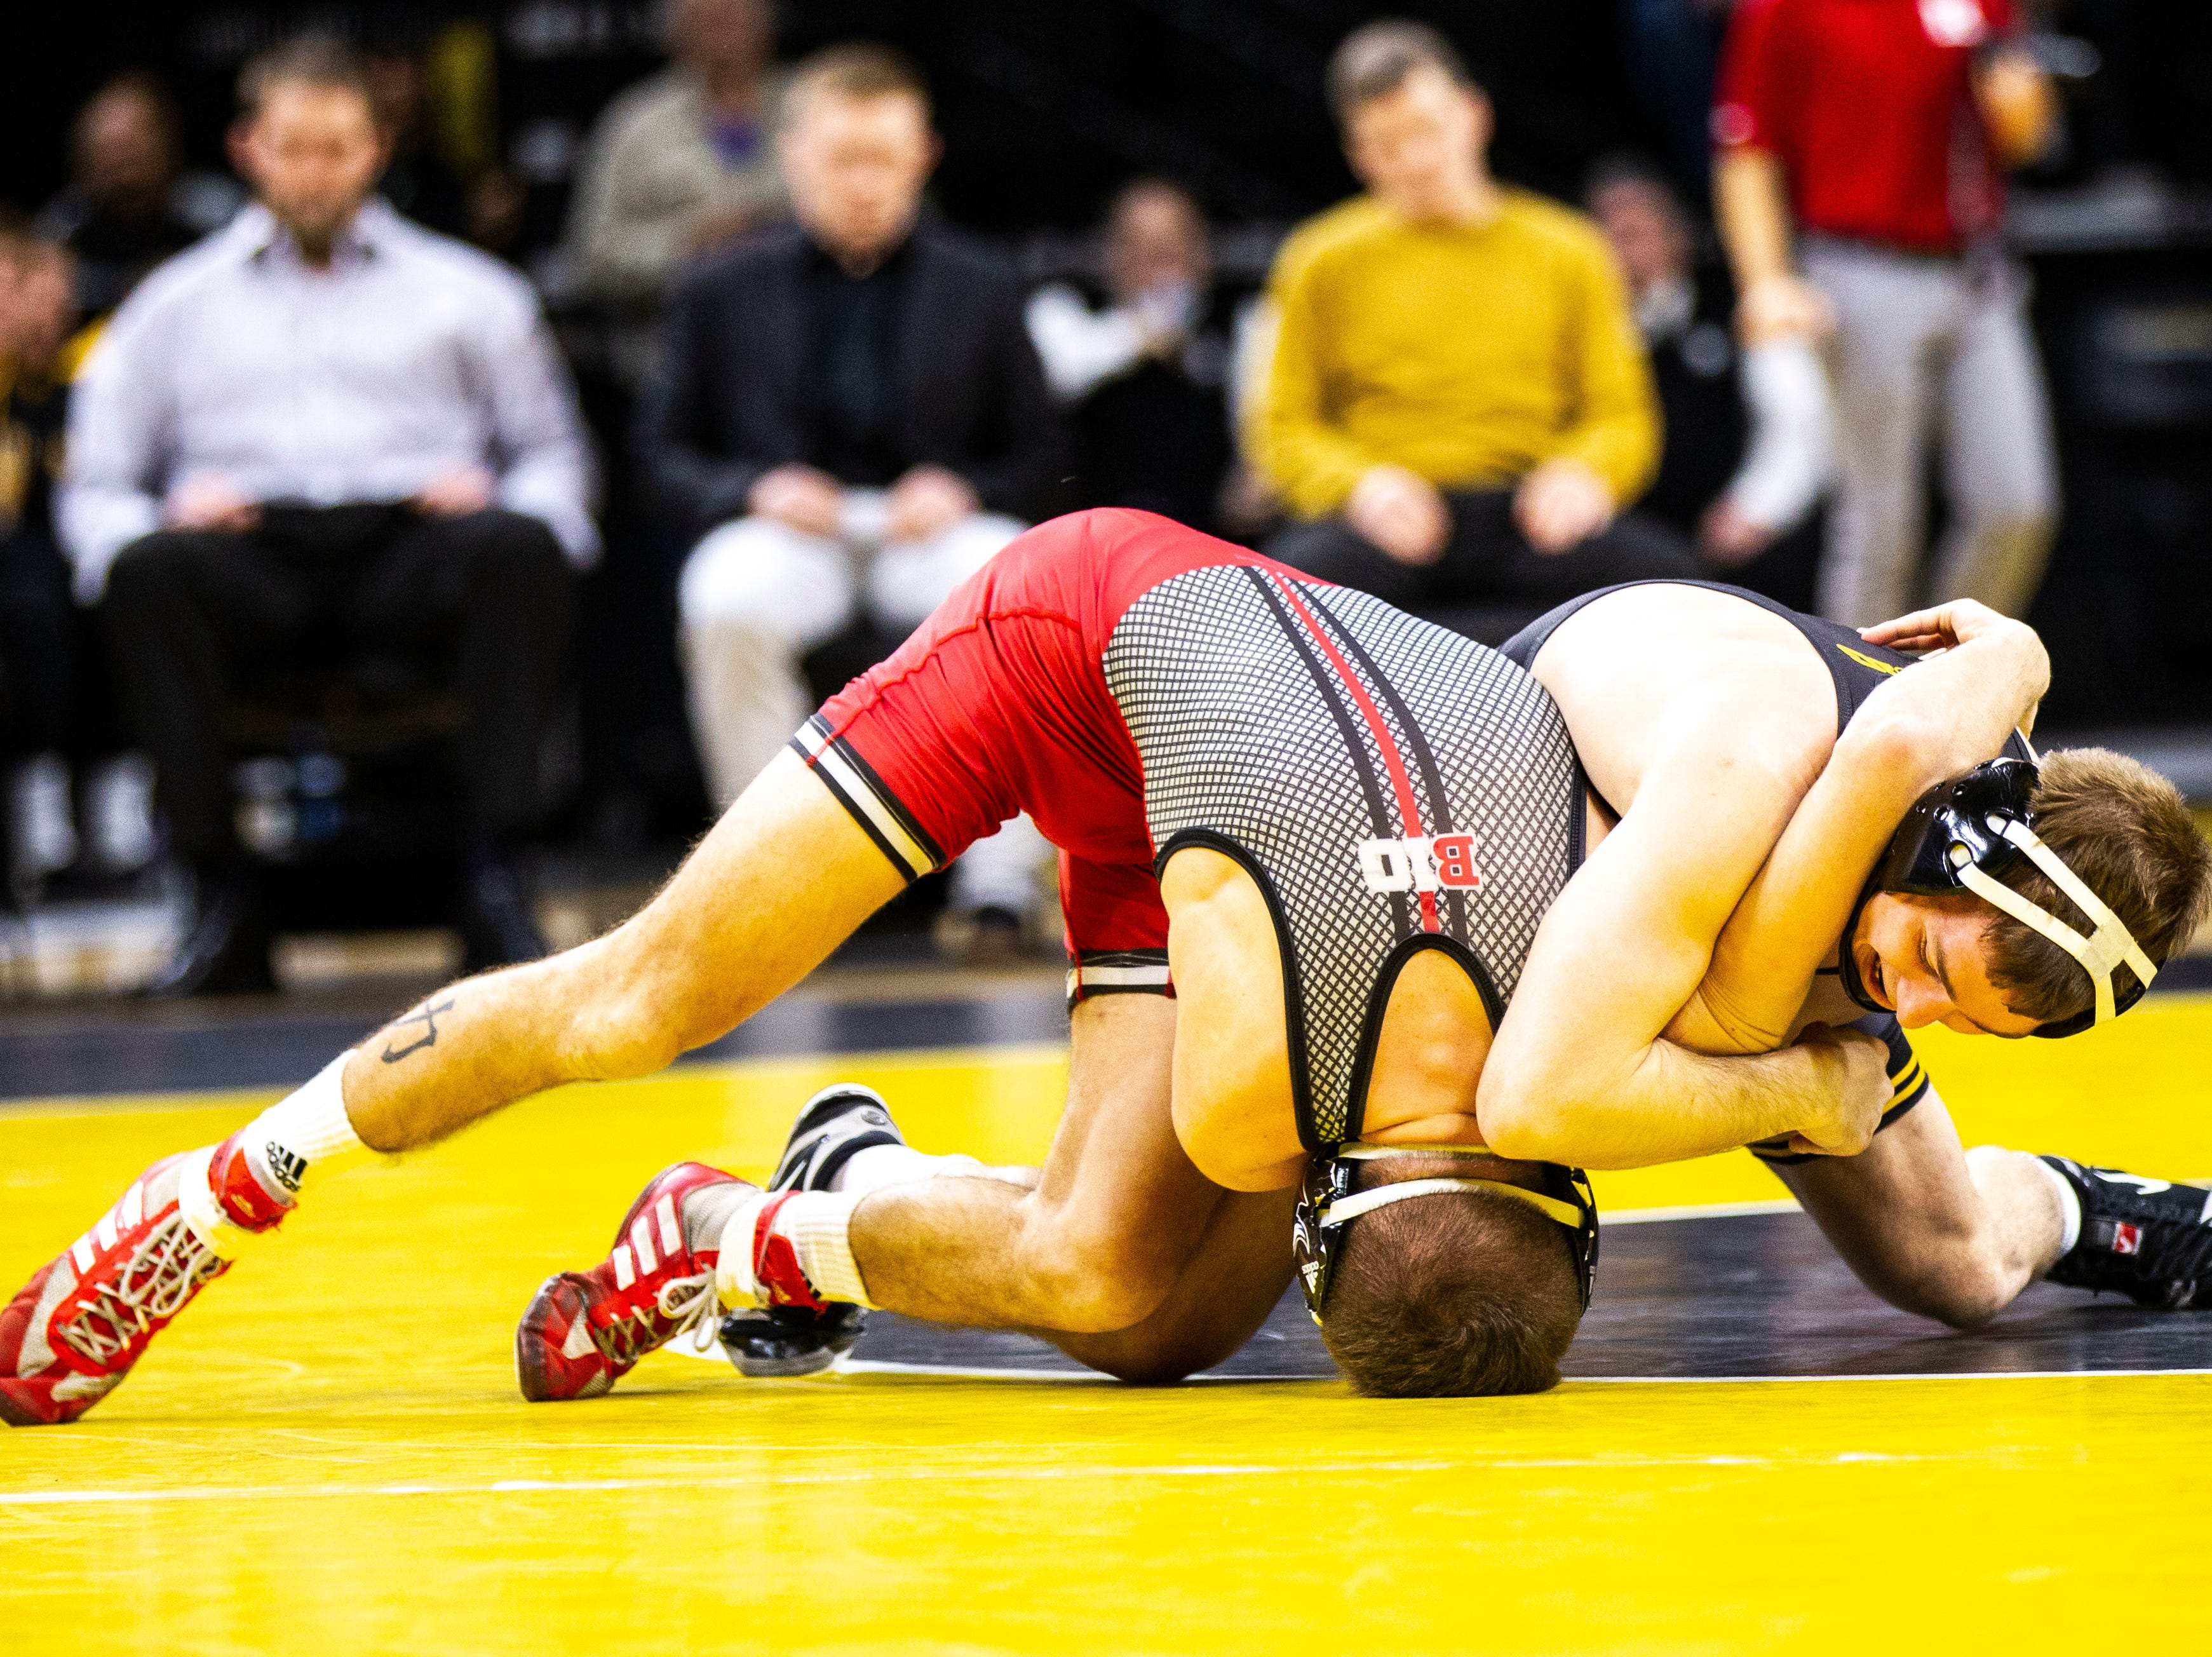 Iowa's Spencer Lee, right, wrestles Rutgers' Nick Denora at 125 during a NCAA Big Ten Conference wrestling dual on Friday, Jan. 18, 2019, at Carver-Hawkeye Arena in Iowa City, Iowa.